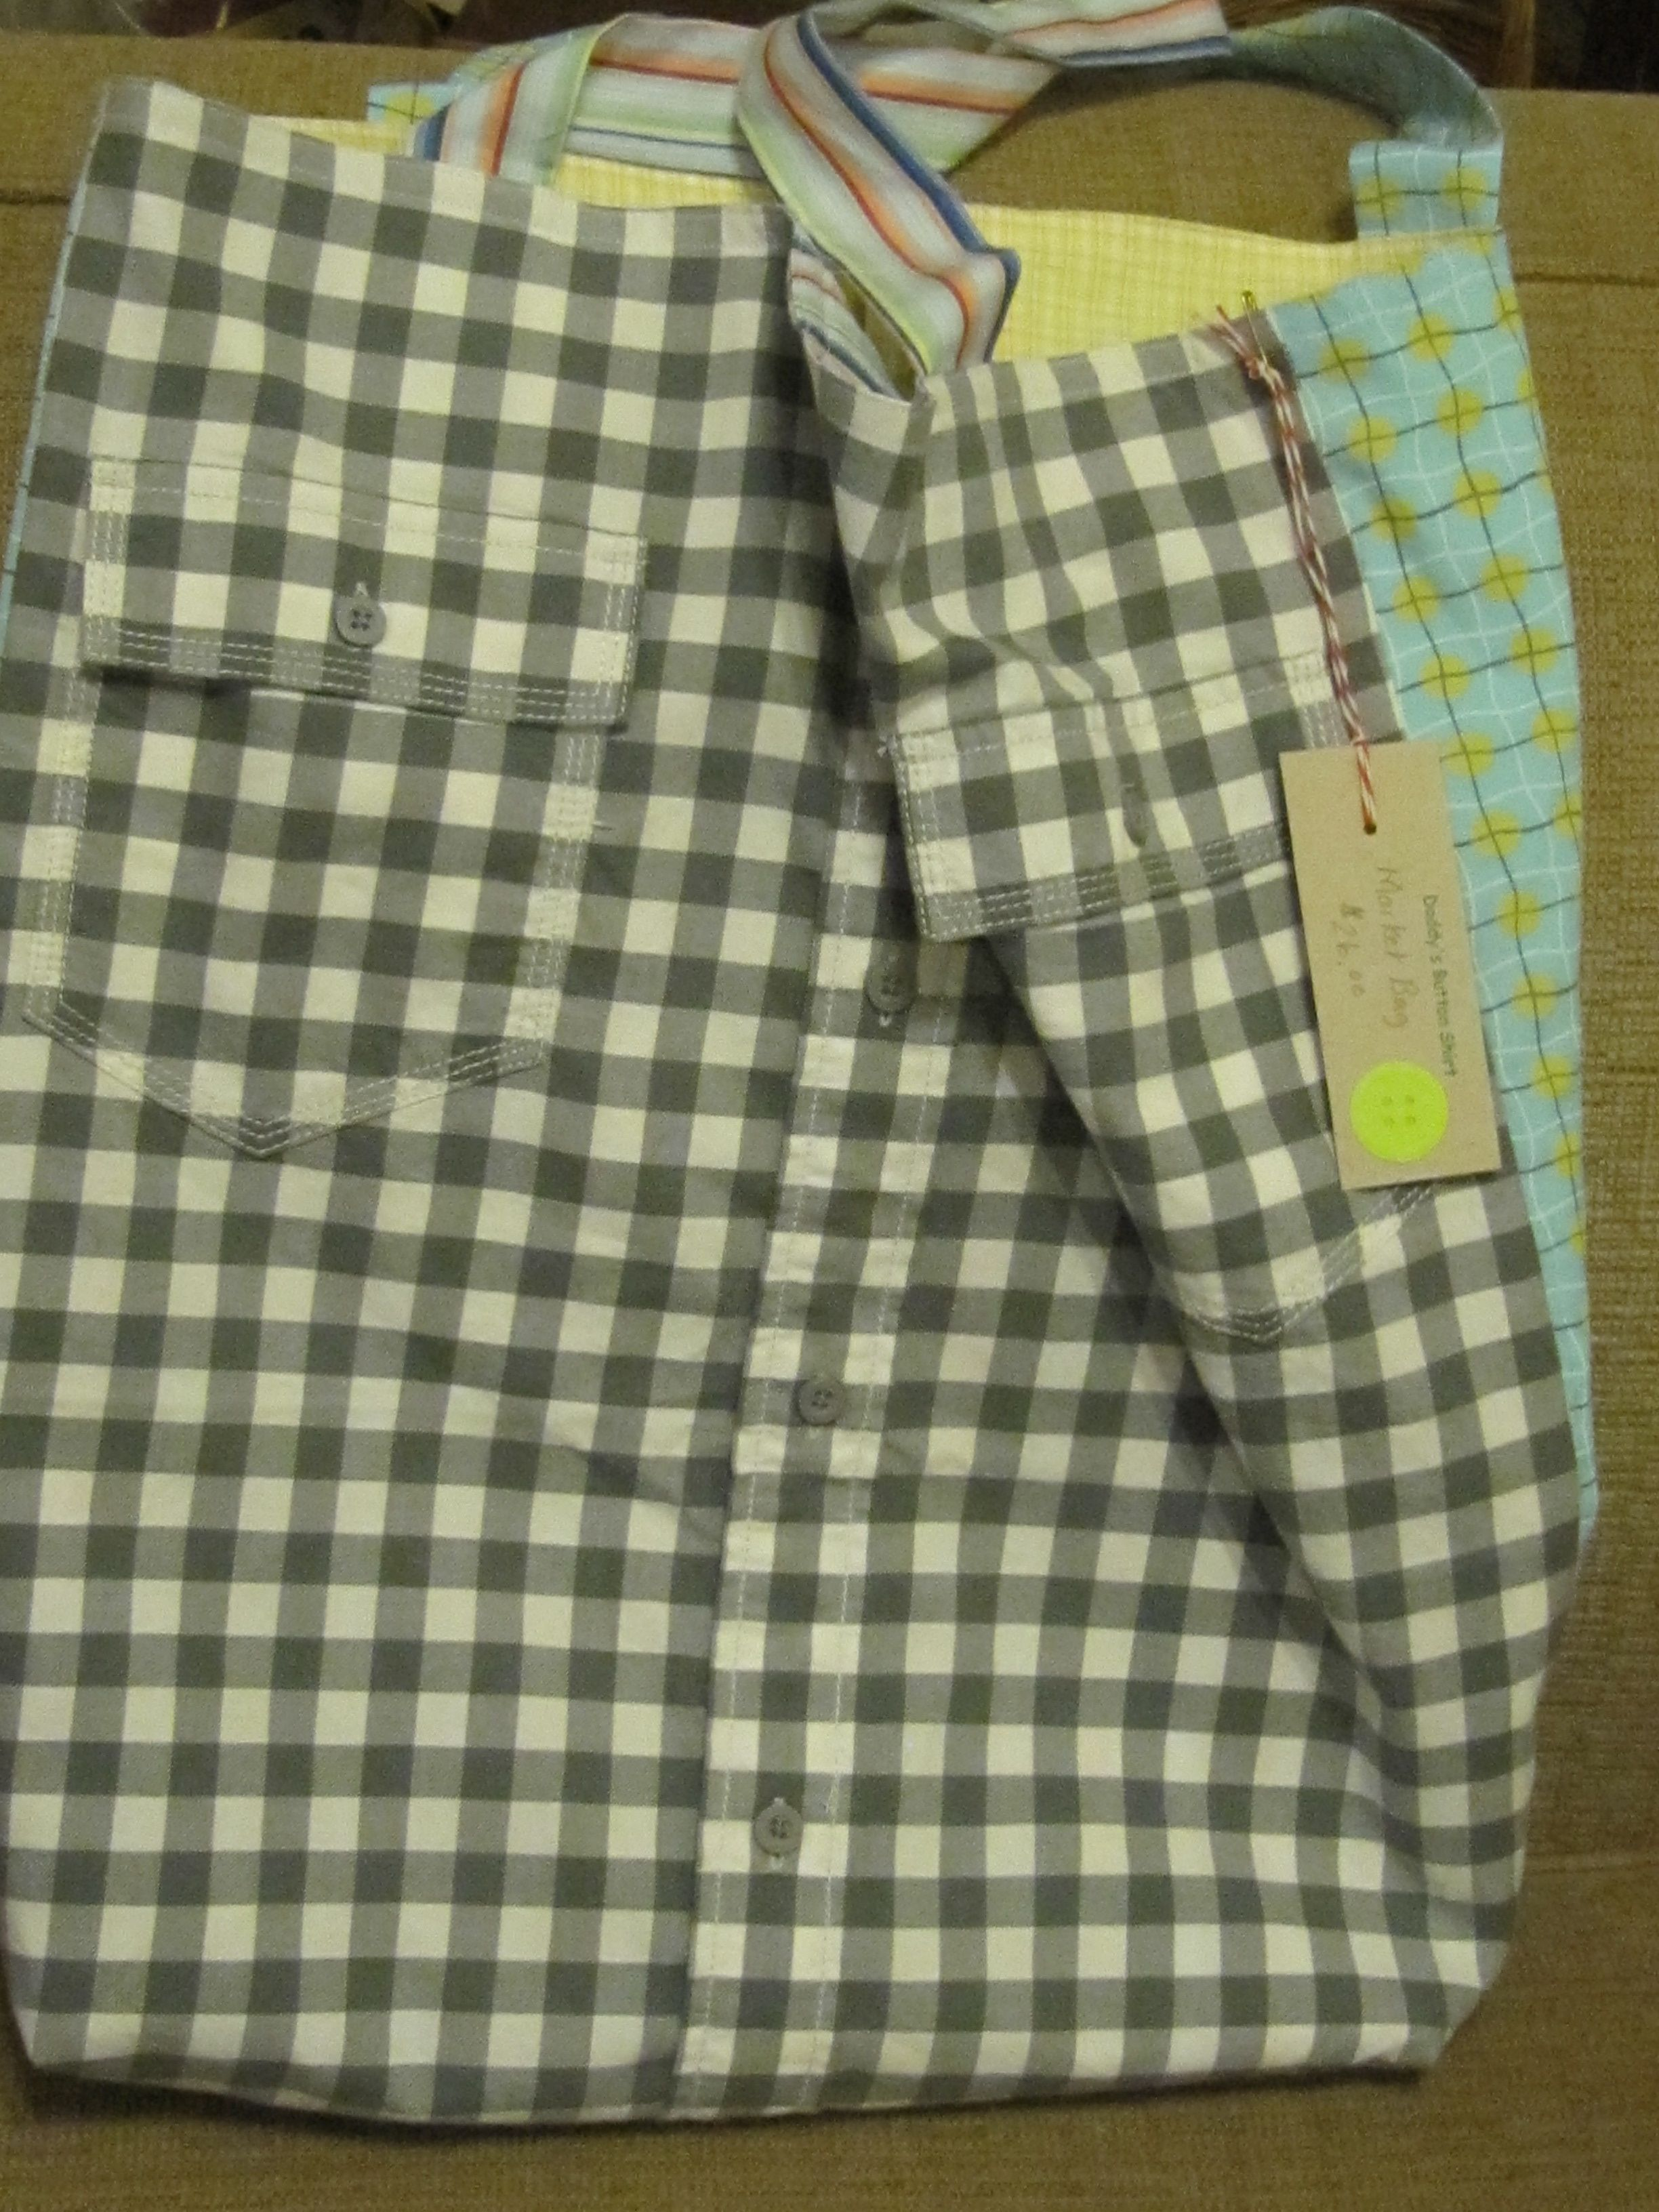 Market Bag - Gray/white check with yellow/gray/turquoise print reverses to yellow check with blue/turquoise/pink stripe $26 Daddy's Button Shirt - sold big Bang Bazaar